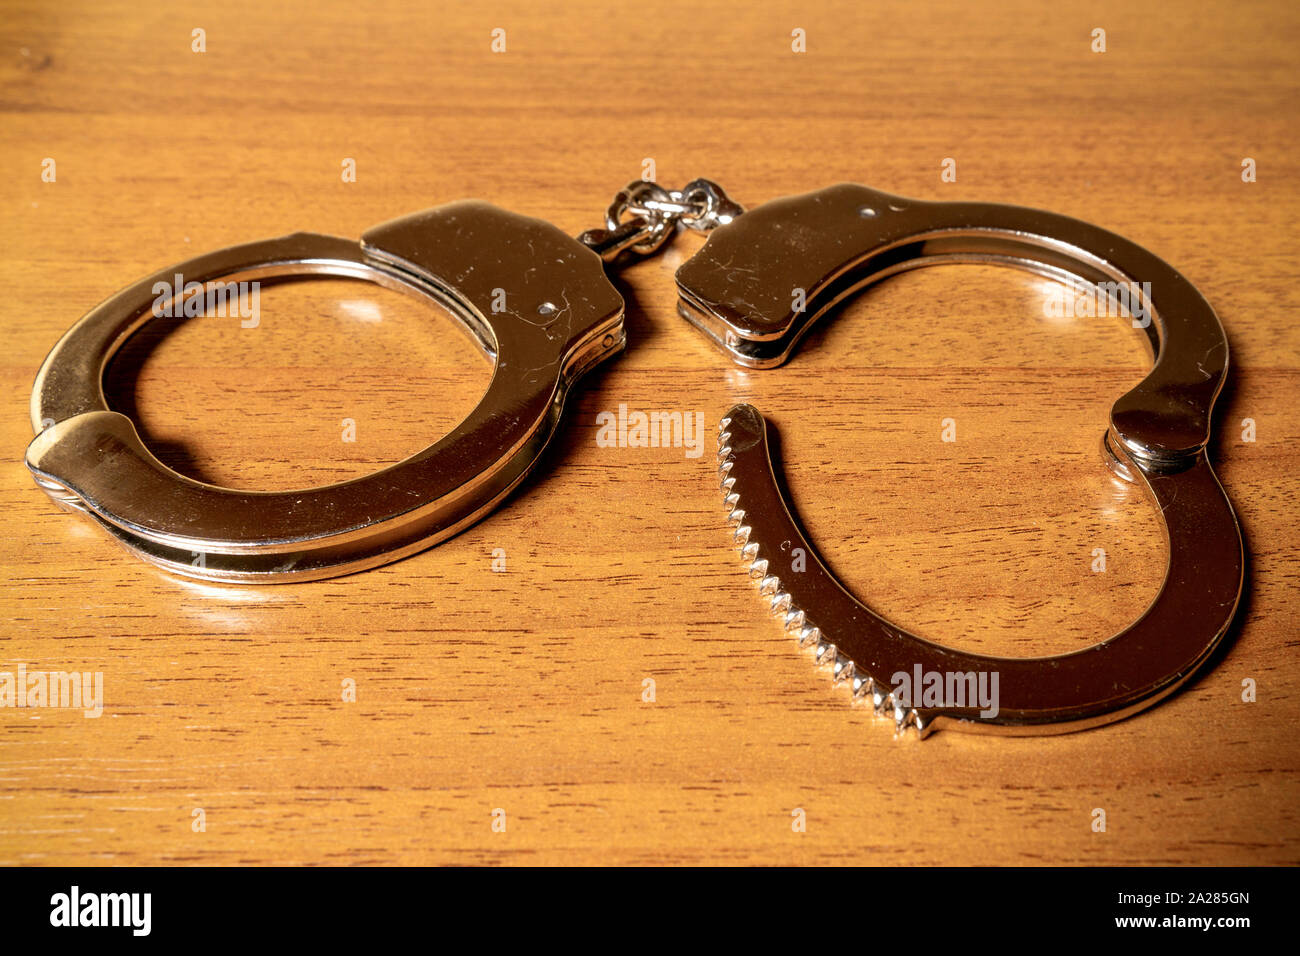 Open handcuffs on a wooden table close-up Stock Photo